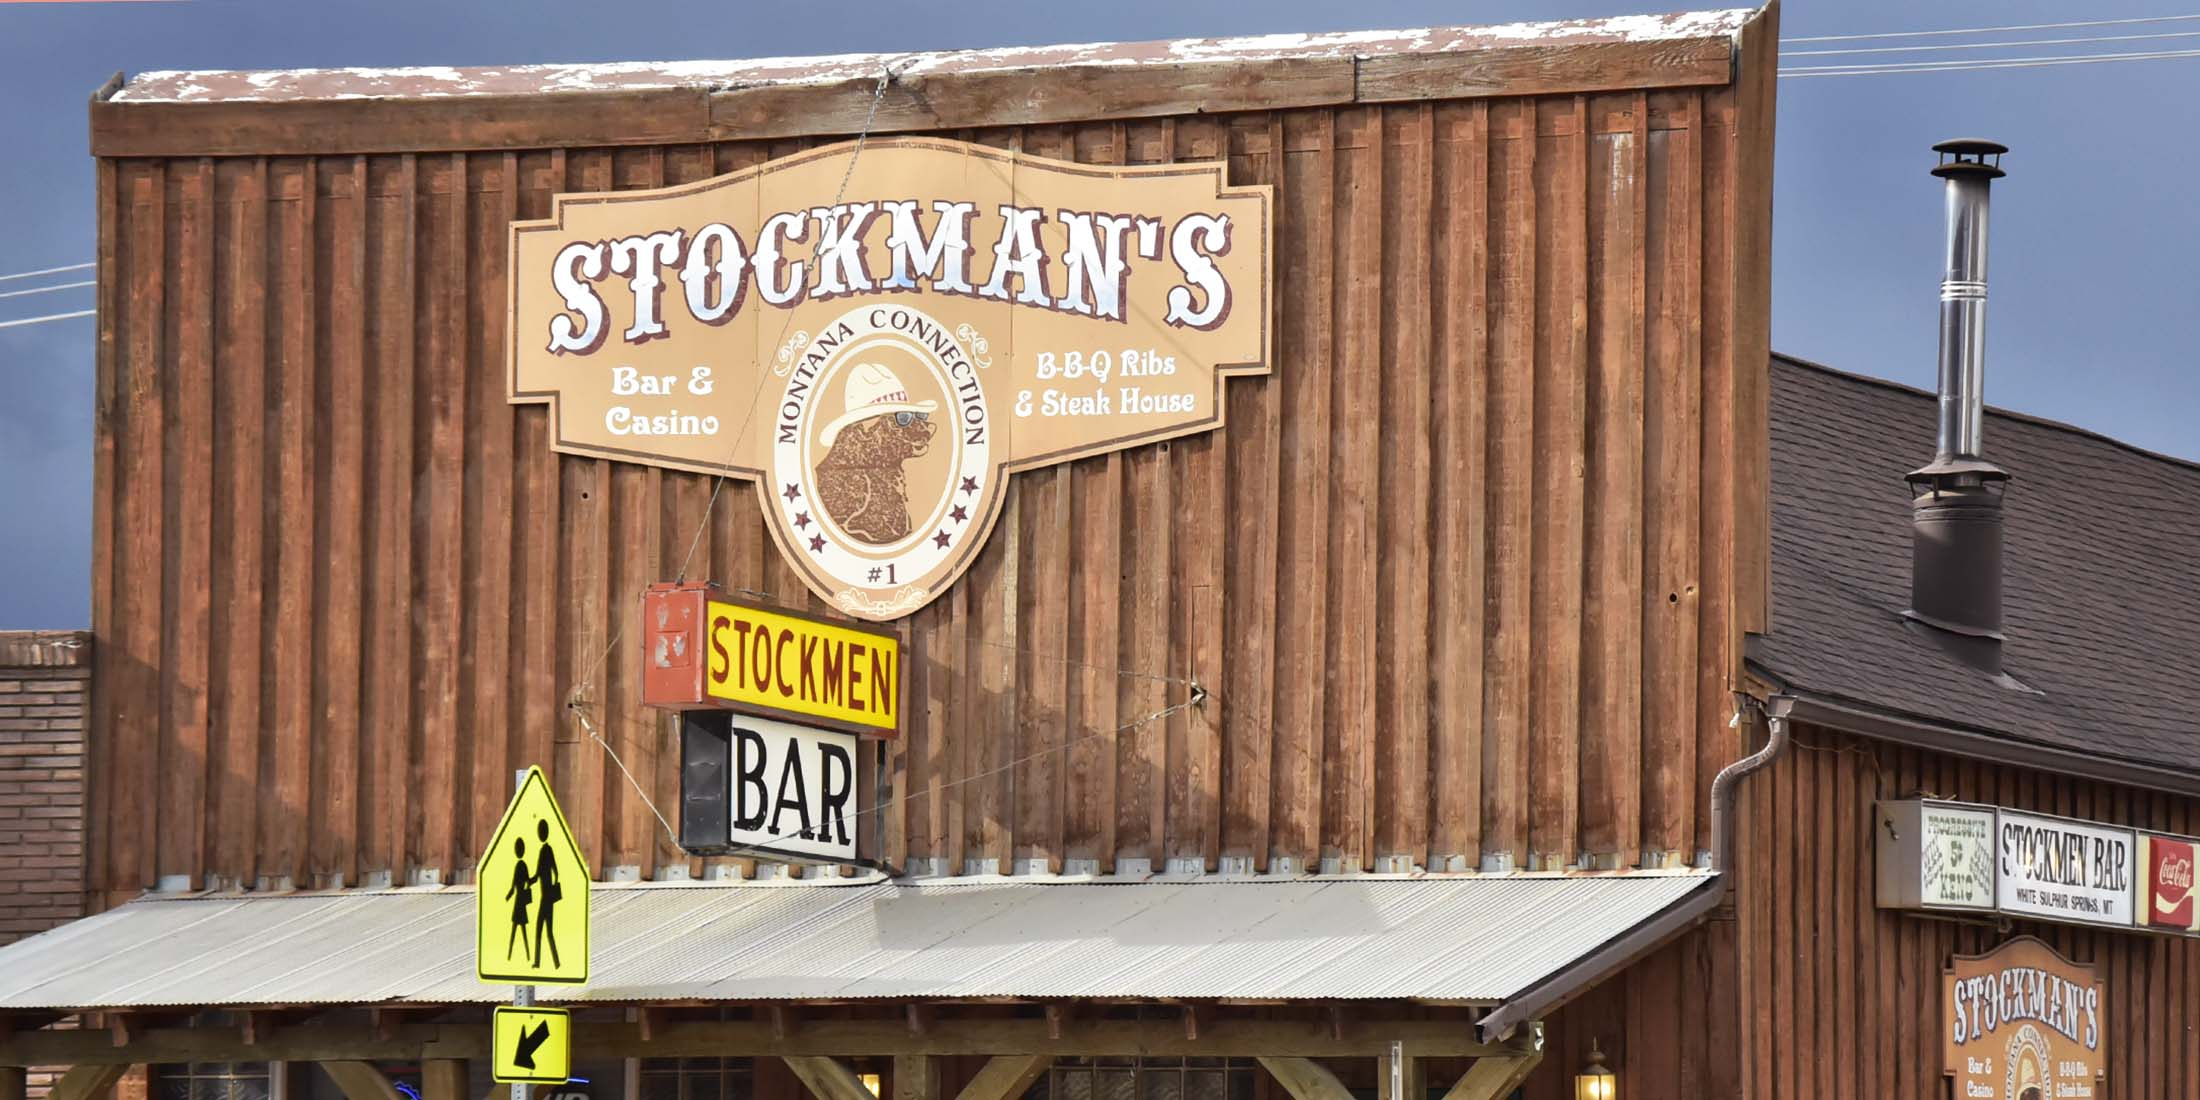 The Stockman Bar is located on Main Street in downtown White Sulphur Springs, Montana - Meagher County.